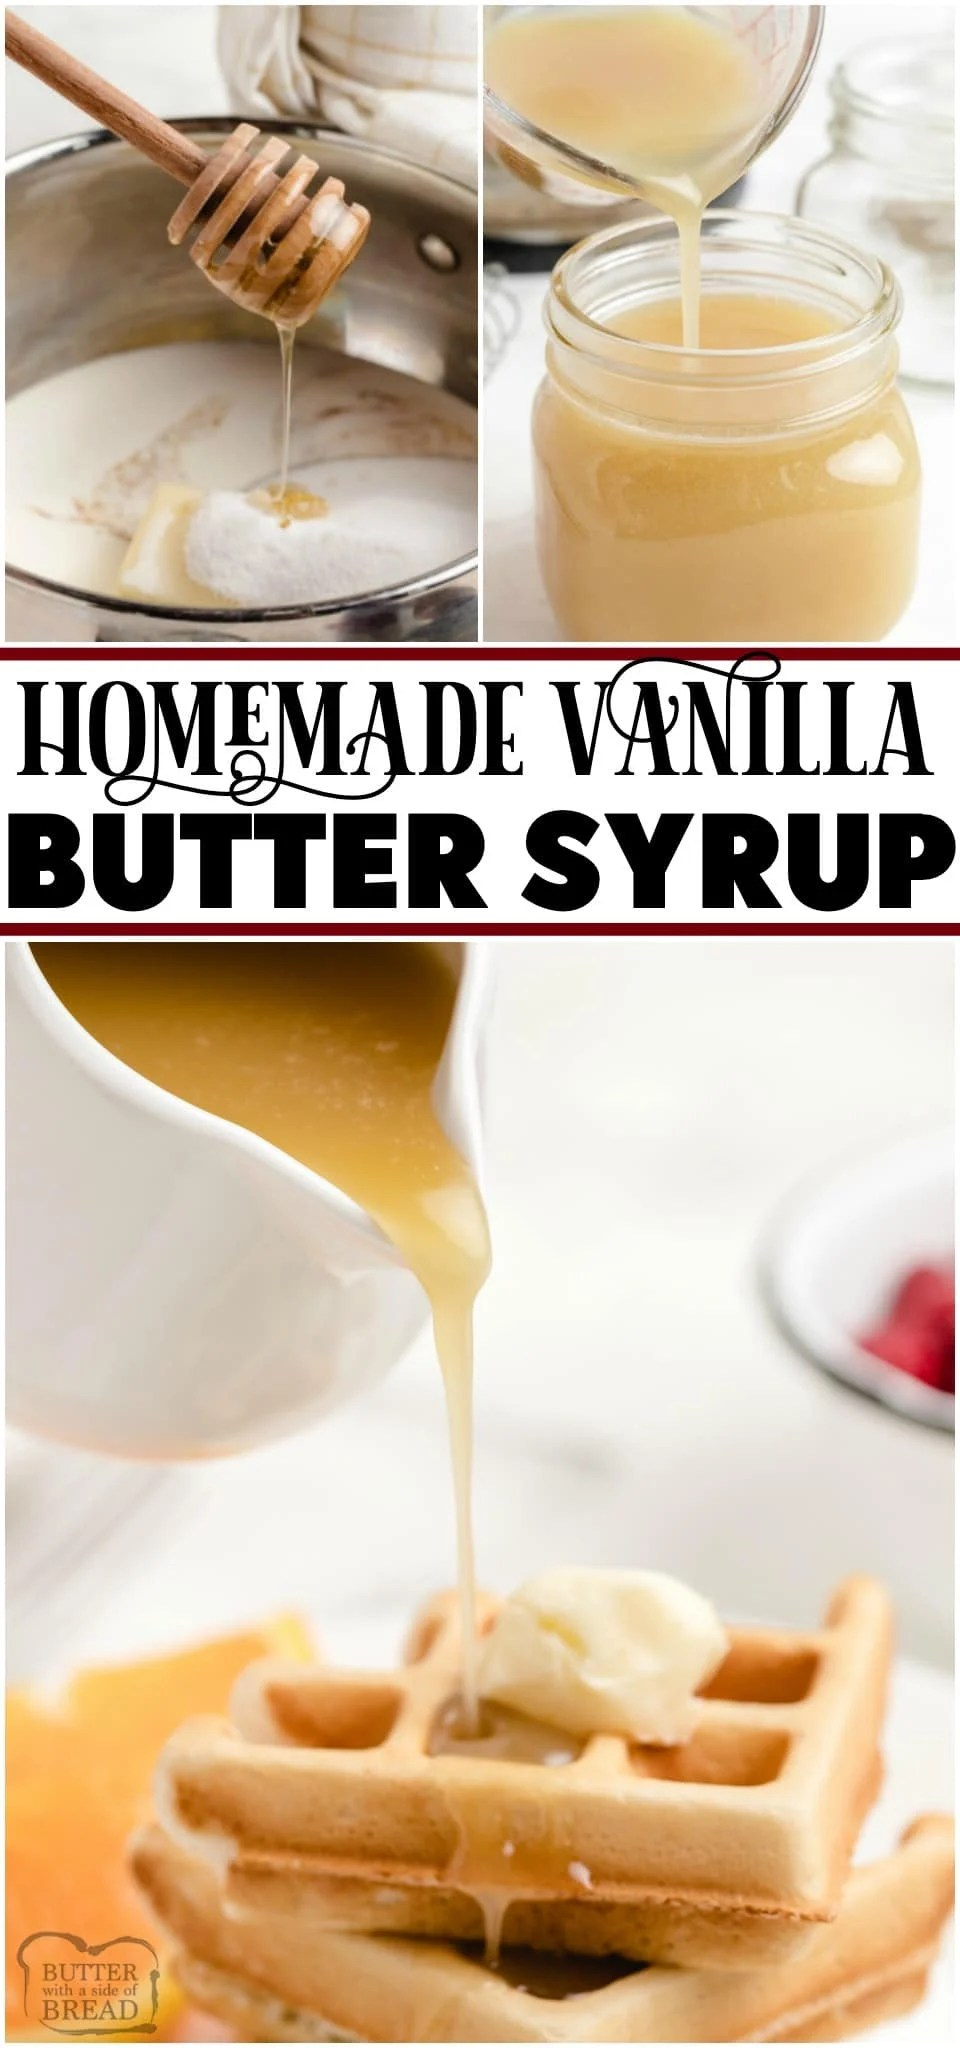 Vanilla Butter Syrup is better than anything store-bought! Homemade Syrup recipe made with butter, brown sugar, half & half, honey and vanilla extract. Easy to make syrup with fantastic buttery flavor! #syrup #vanilla #butter #breakfast #homemade #recipe from BUTTER WITH A SIDE OF BREAD